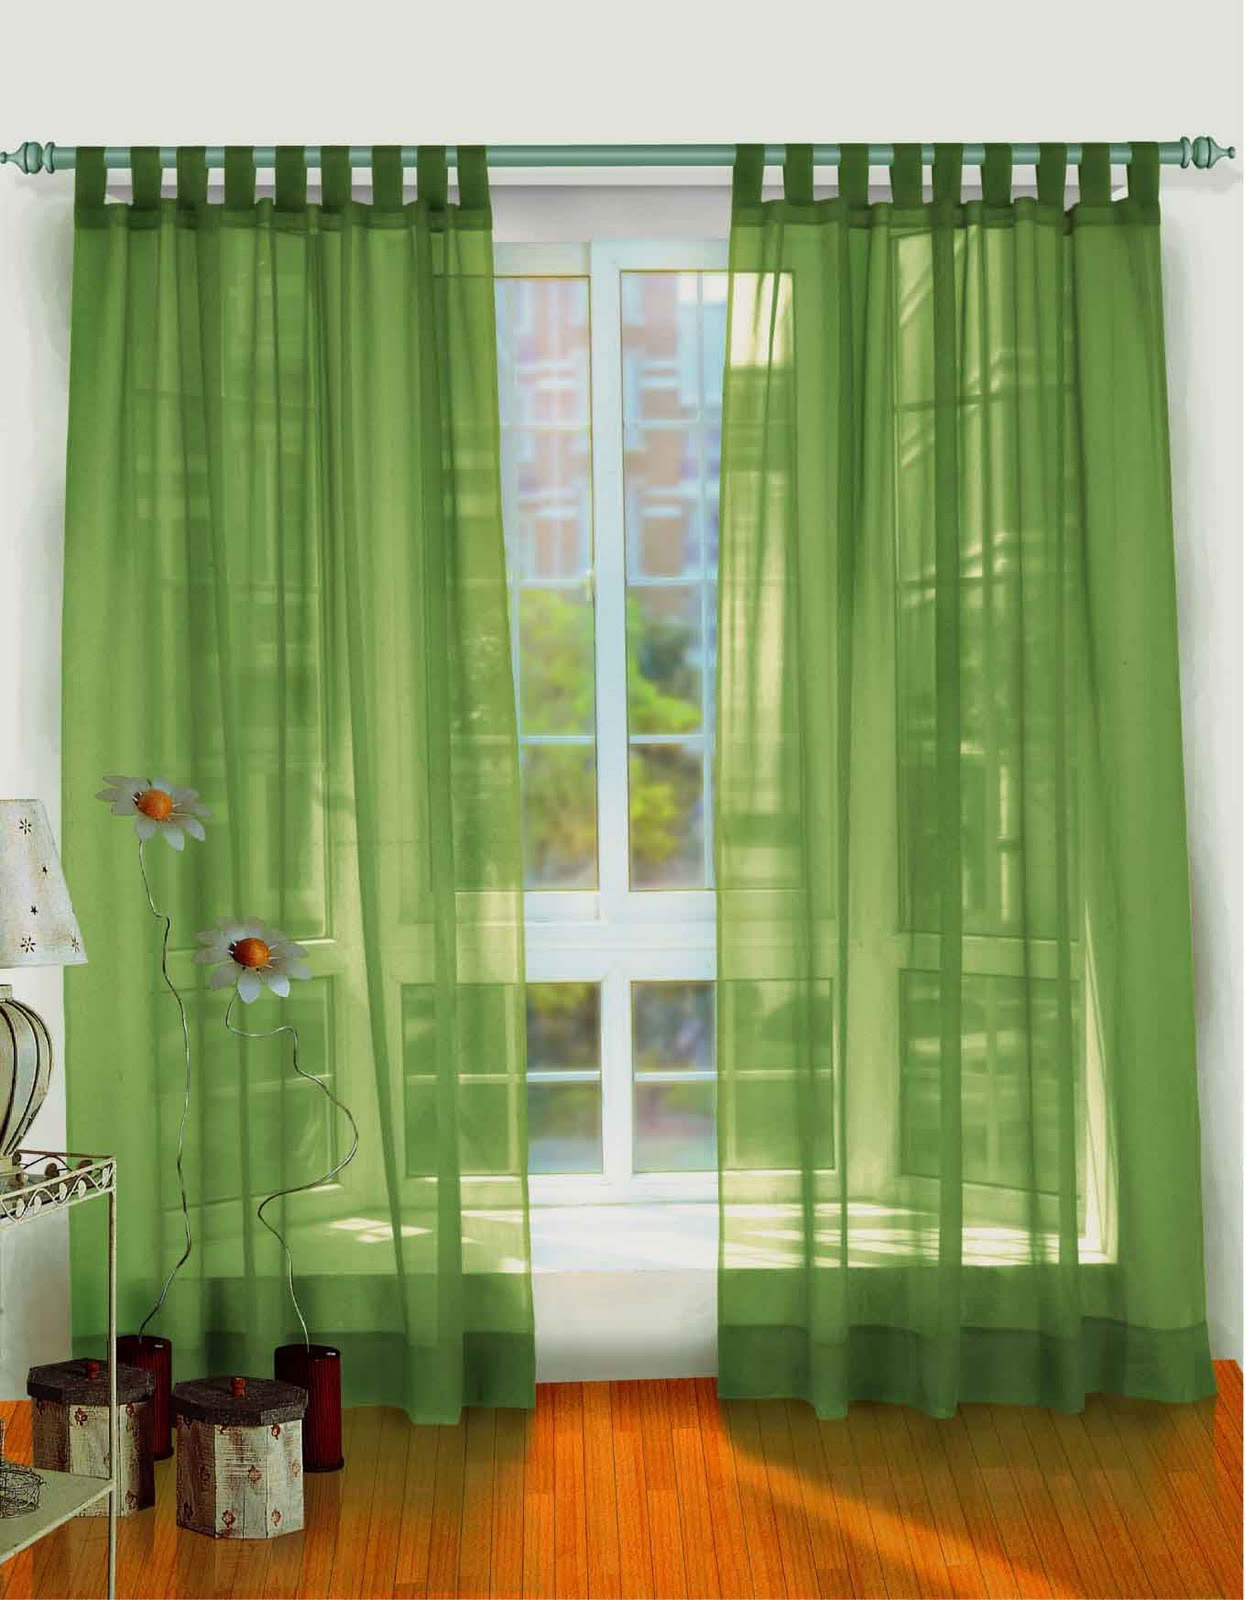 Modern Furniture: Living room curtains ideas 2011 on Living Room Drapes Ideas  id=97593